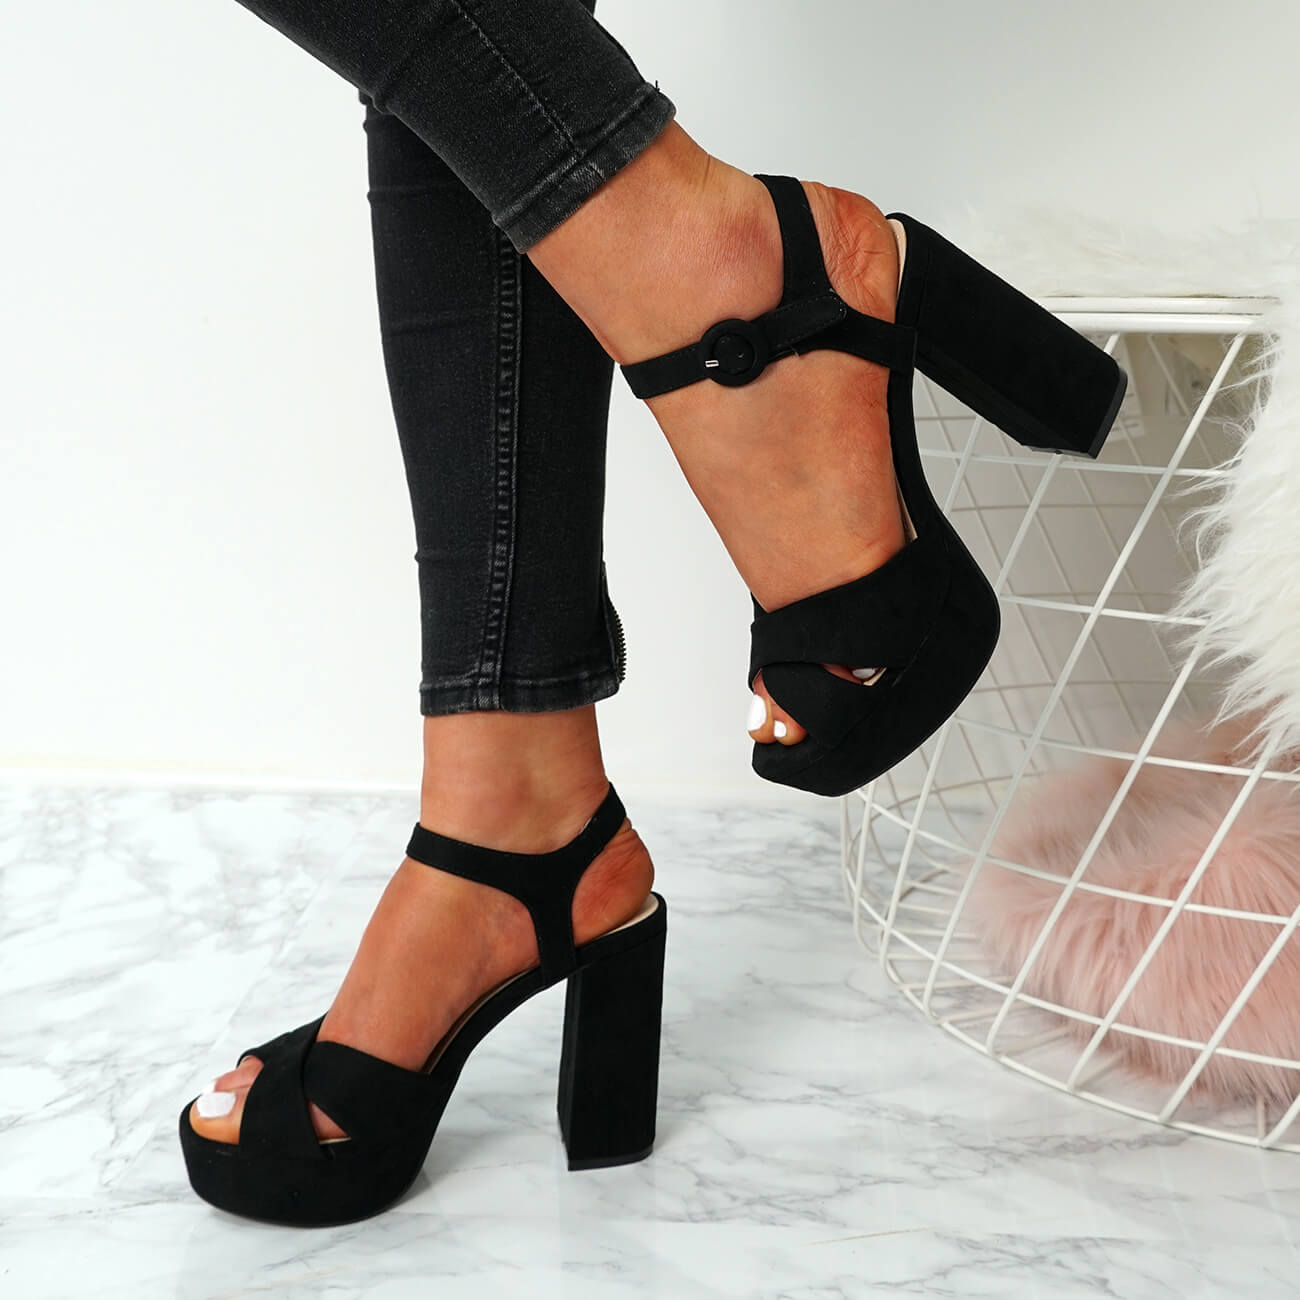 f2cae99a8c WOMENS LADIES HIGH BLOCK CHUNKY HEELS SANDALS PLATFORMS ANKLE STRAP ...